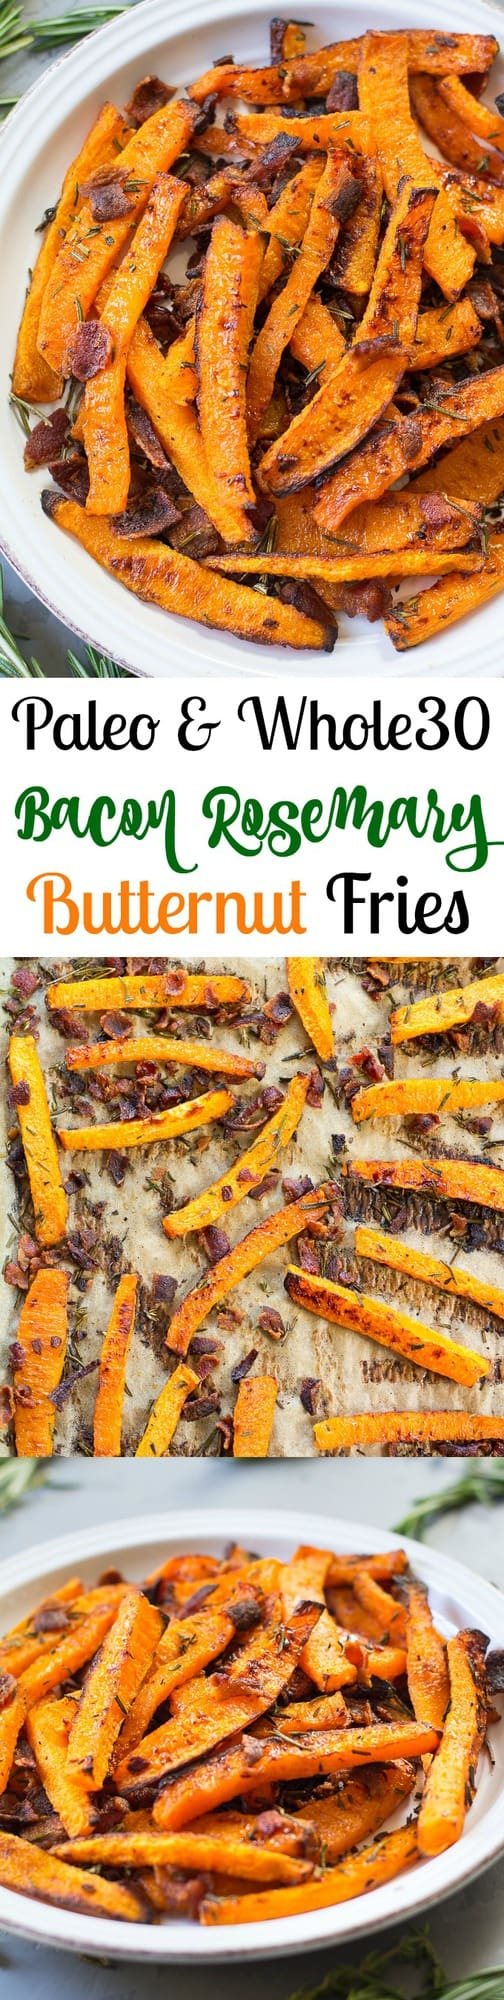 bacon-rosemary-roasted-butternut-squash-fries